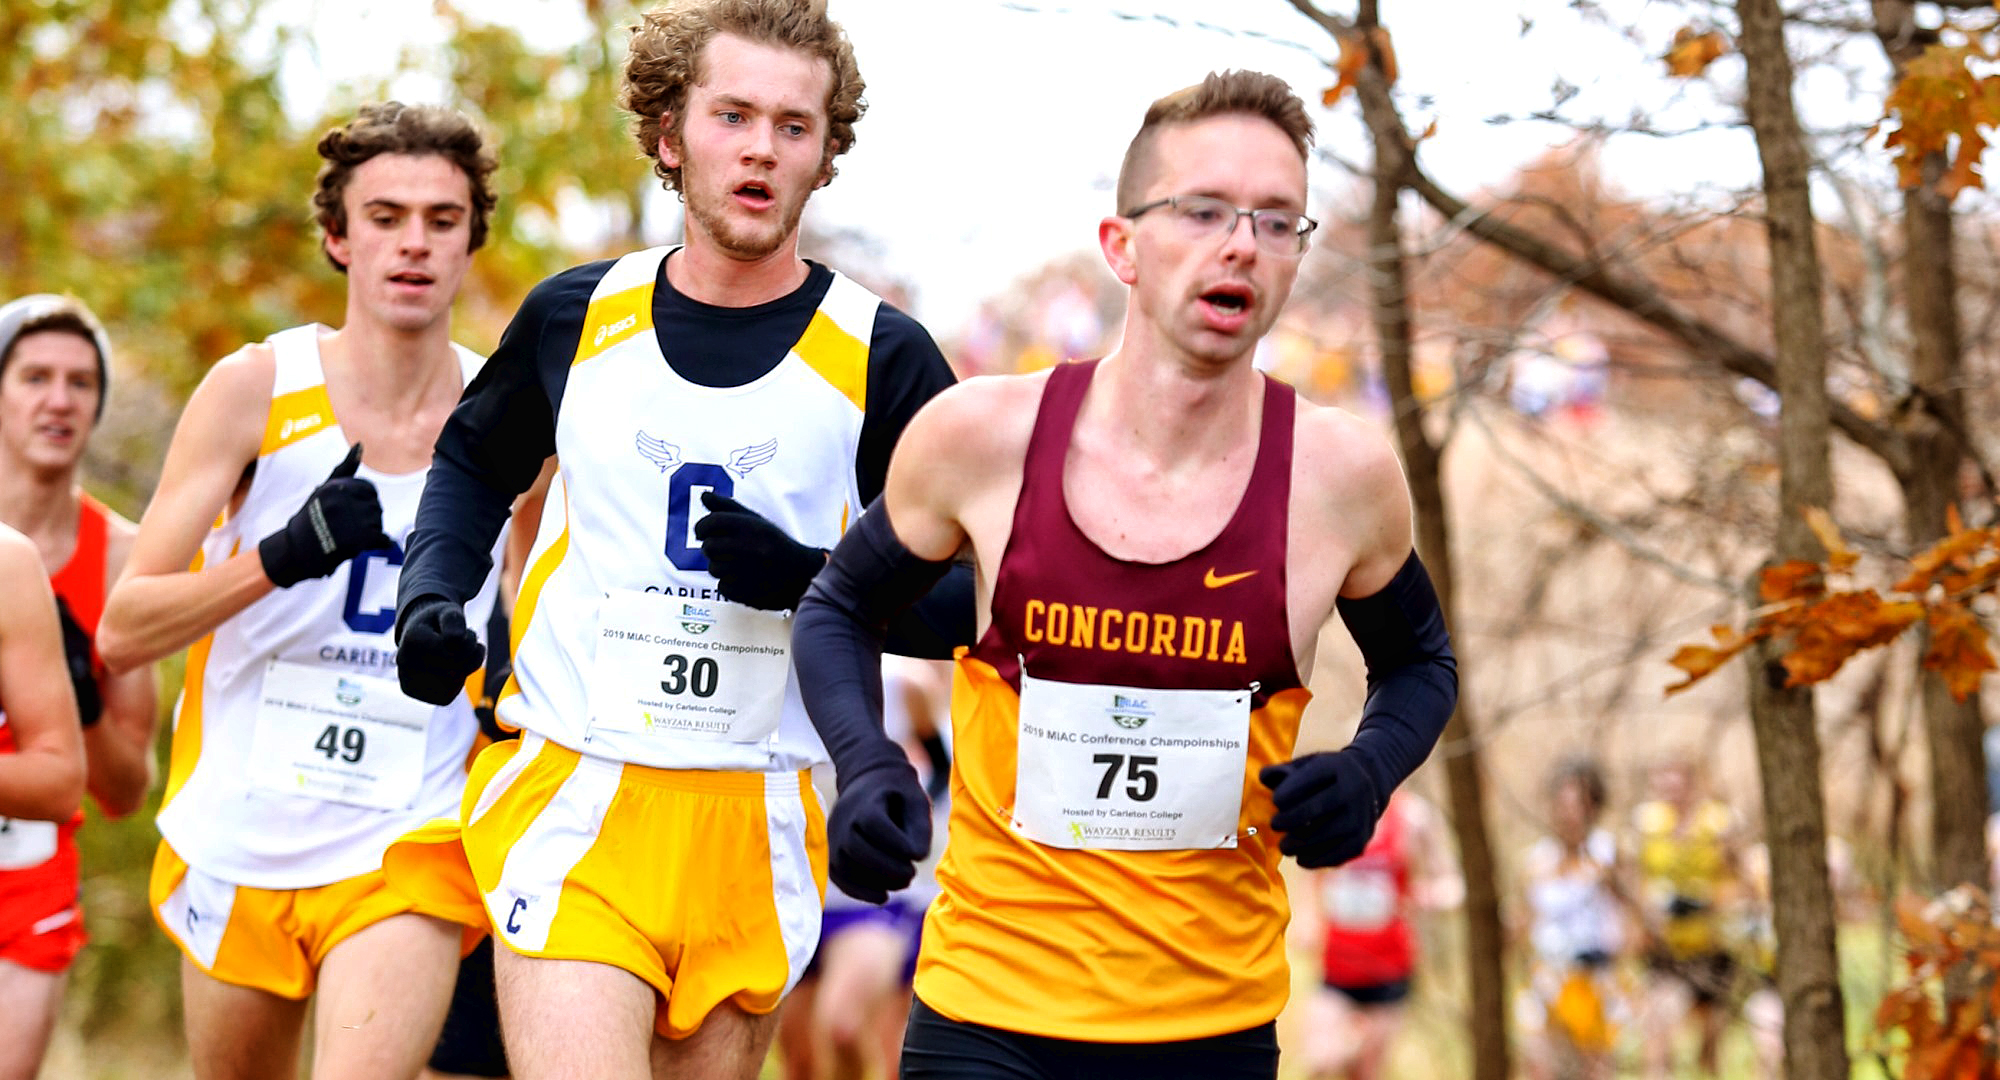 Senior Eric Wicklund races in the early stages of the MIAC Championship Meet. He went on to earn All-MIAC Honorable Mention honors. (Photo courtesy of Nathan Lodermeier)